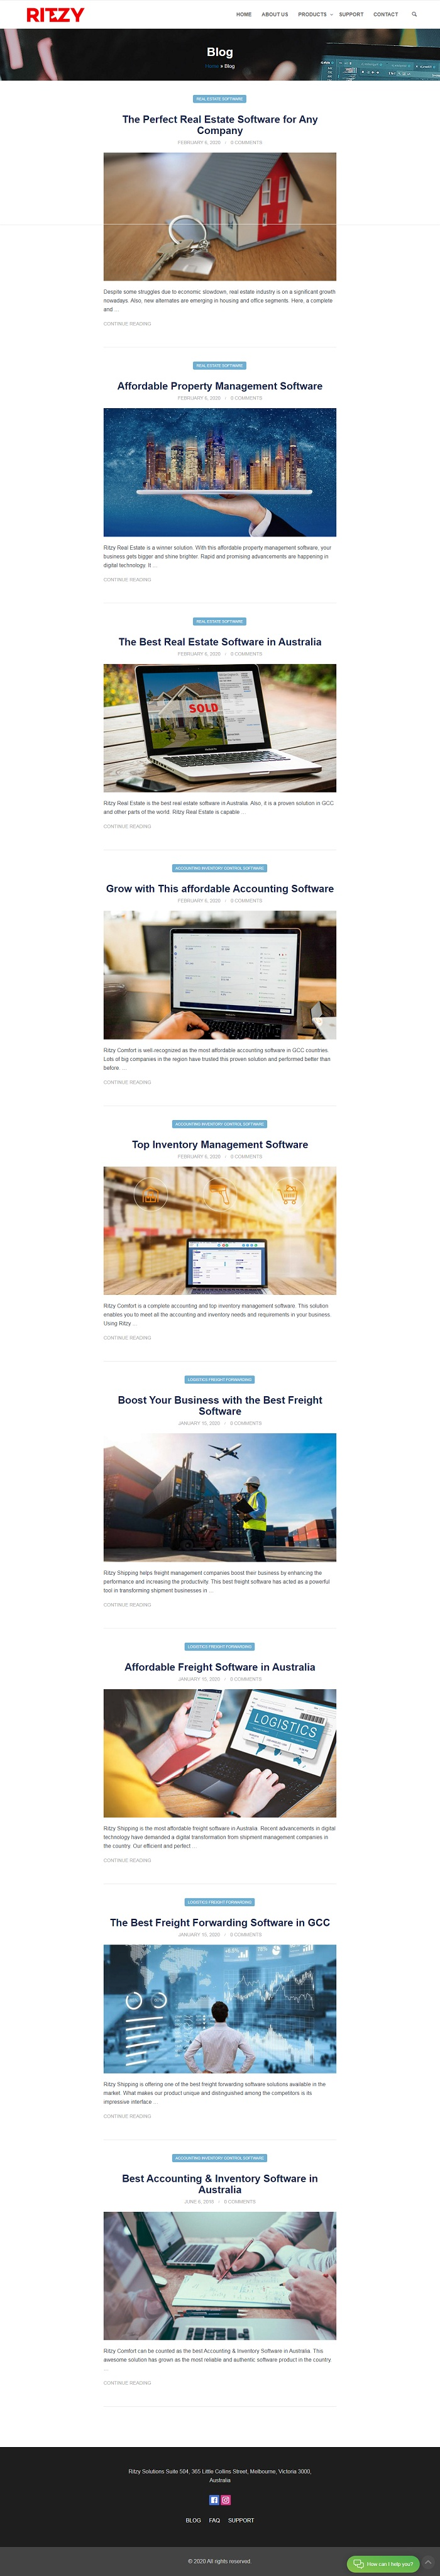 Logistics and Freight Forwarding Software Bahrain